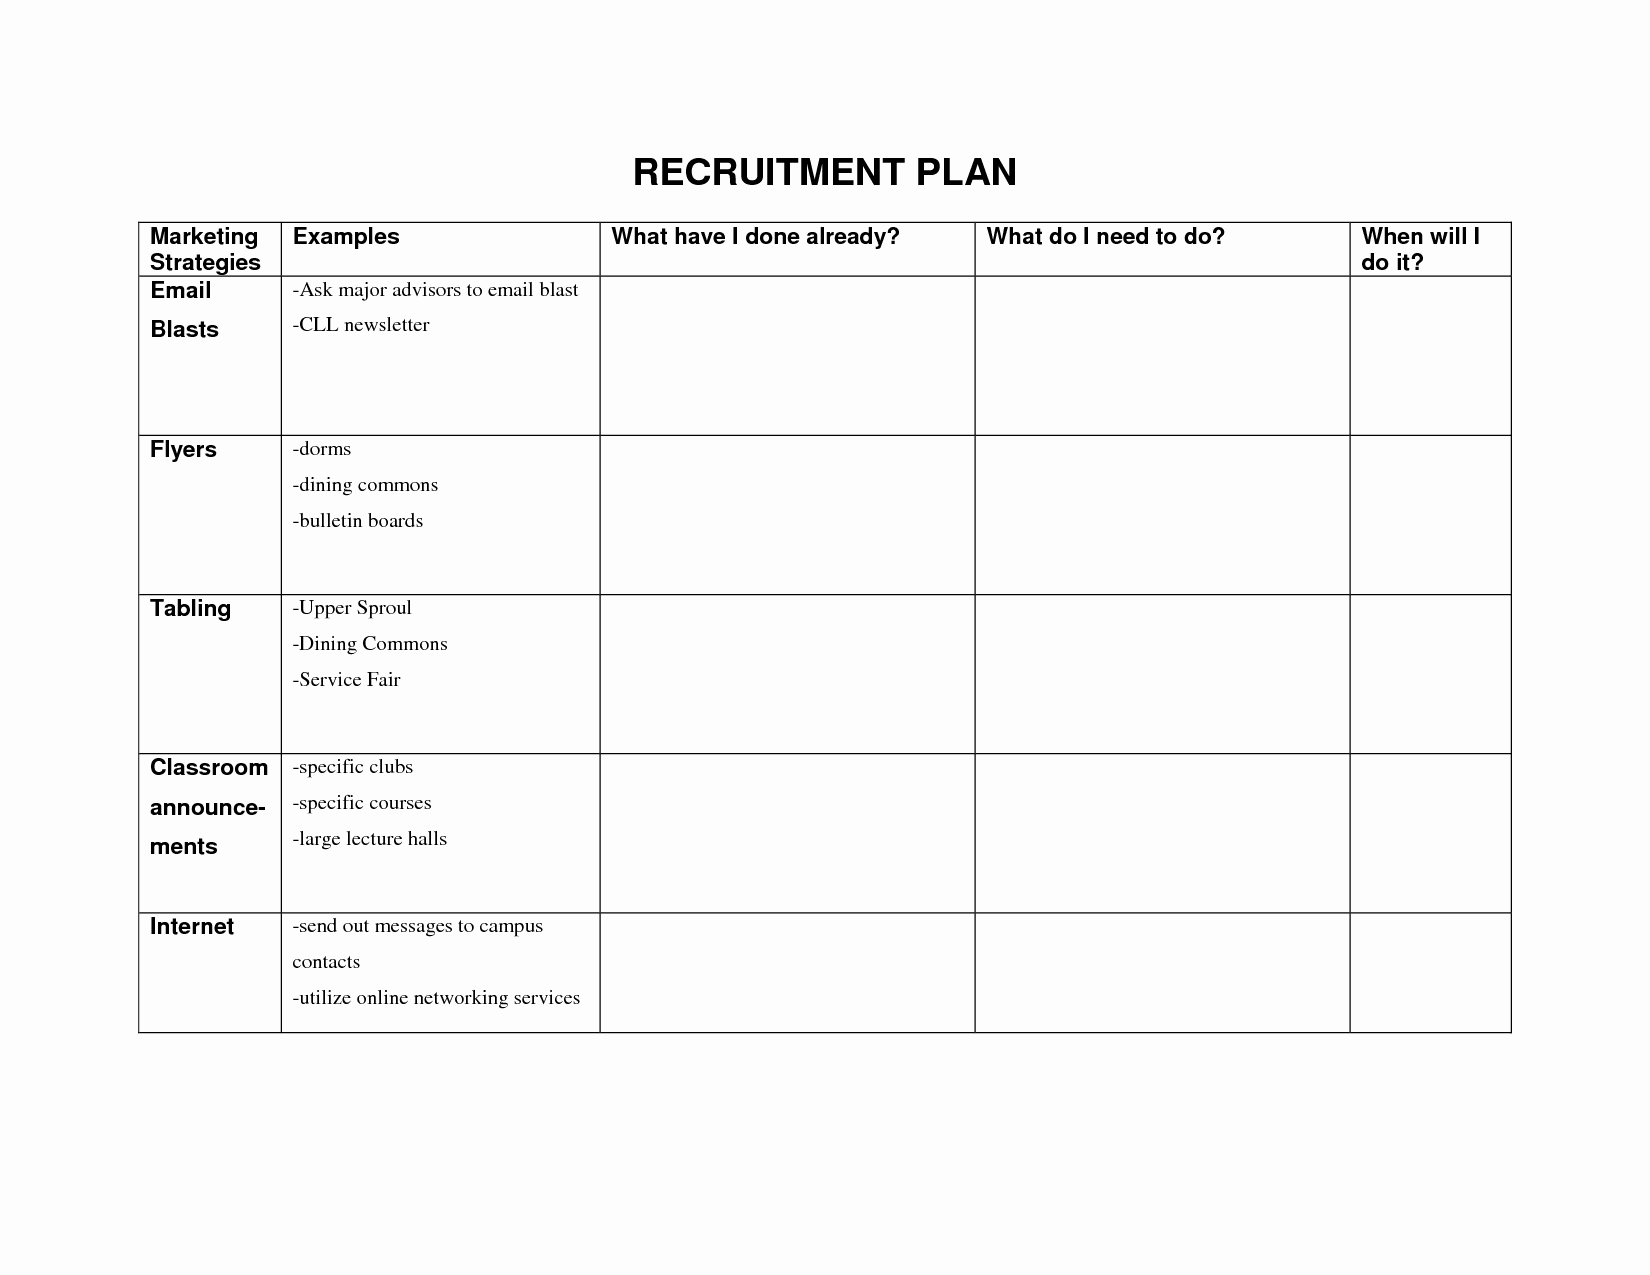 Recruiting Strategic Plan Template Beautiful Recruitment forms and Templates Recruiter forms